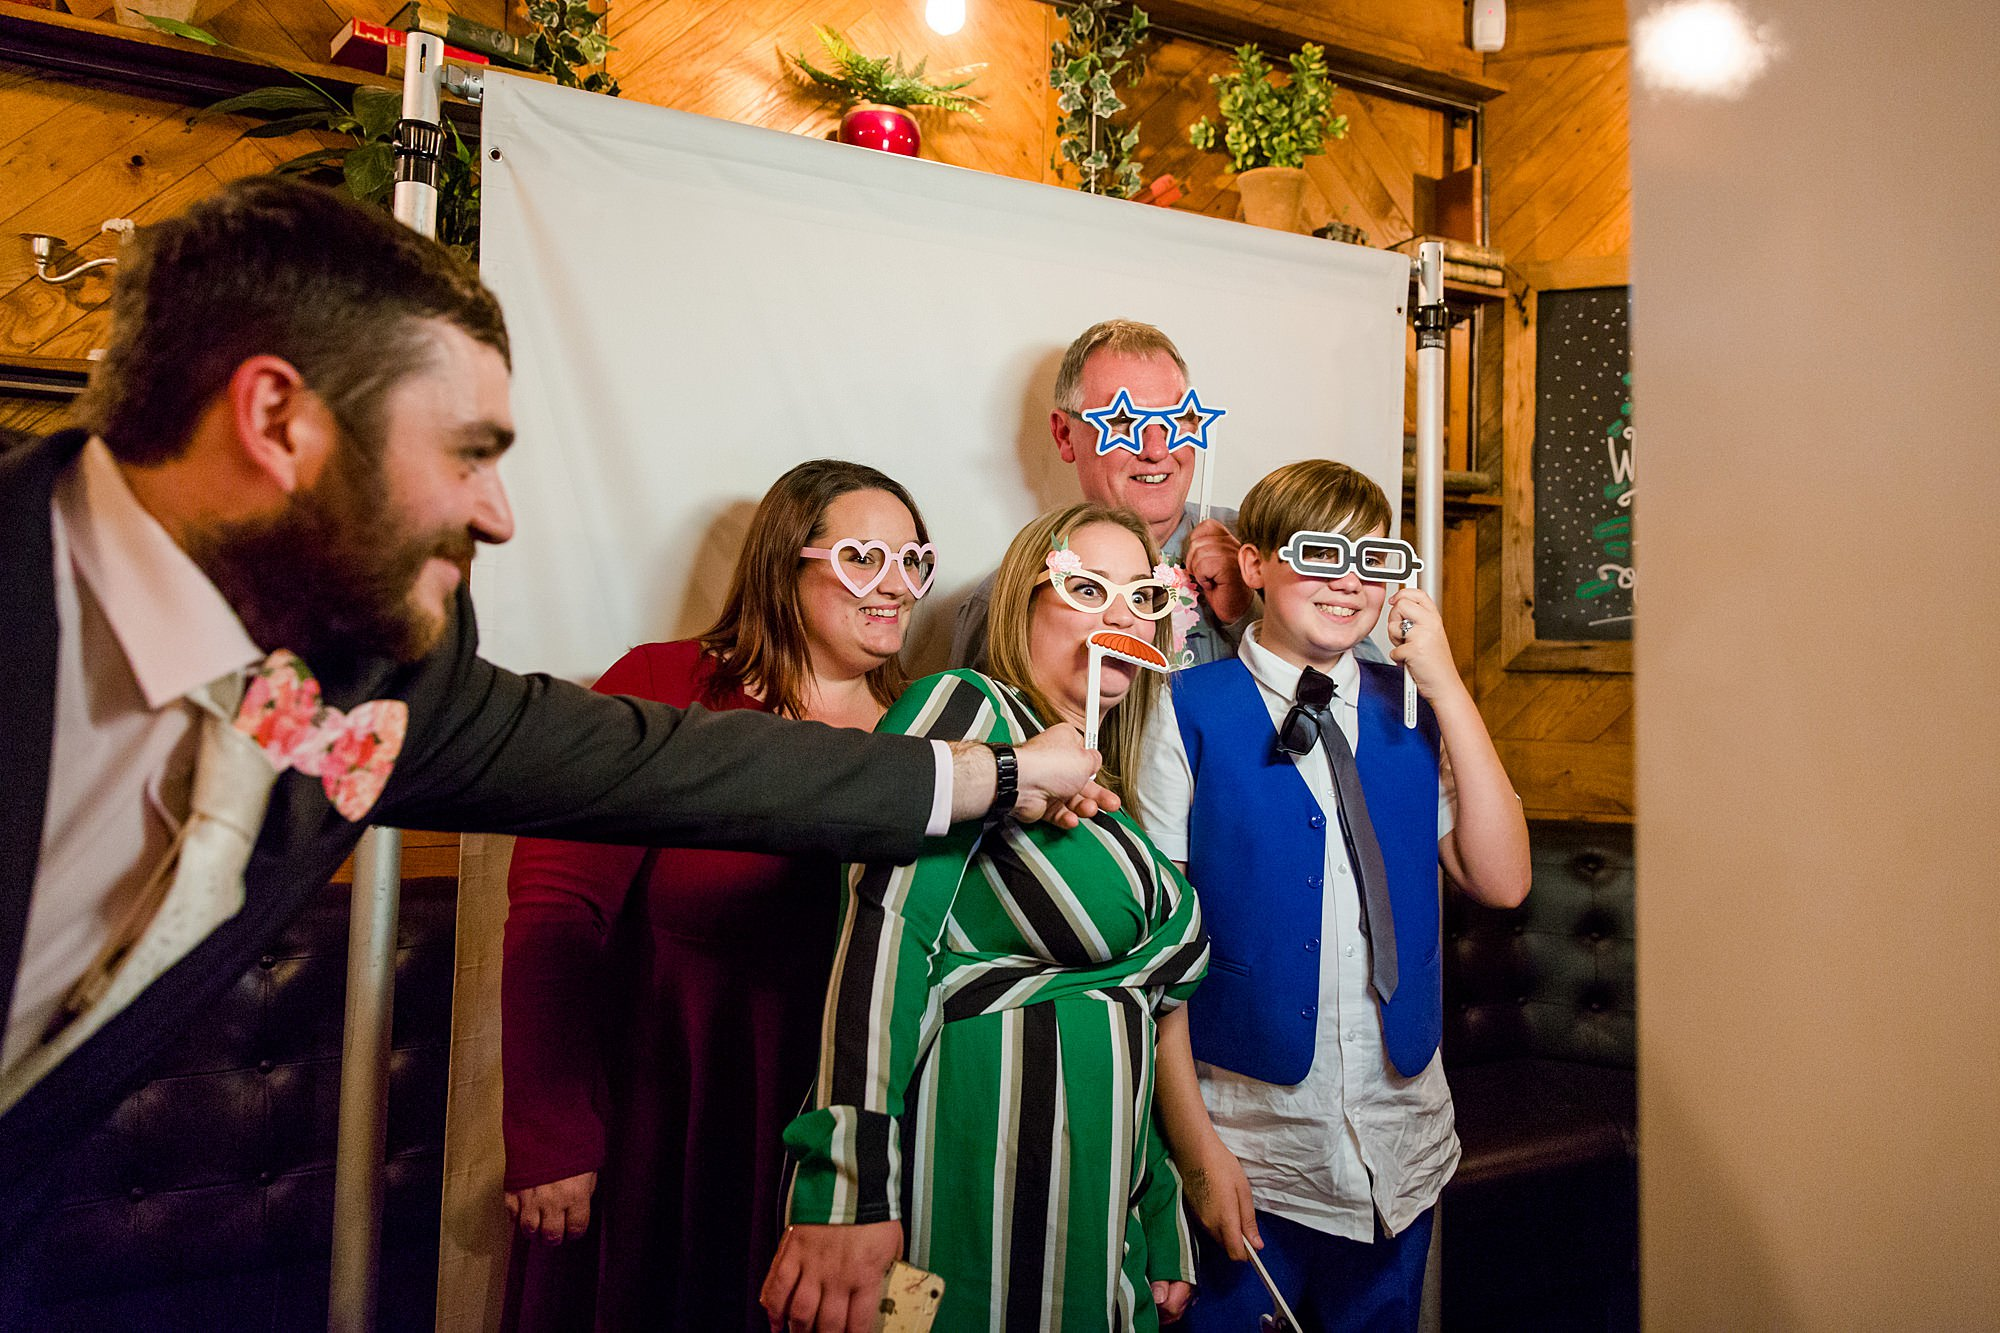 guests play with Photo Booth props at Harrild and sons wedding